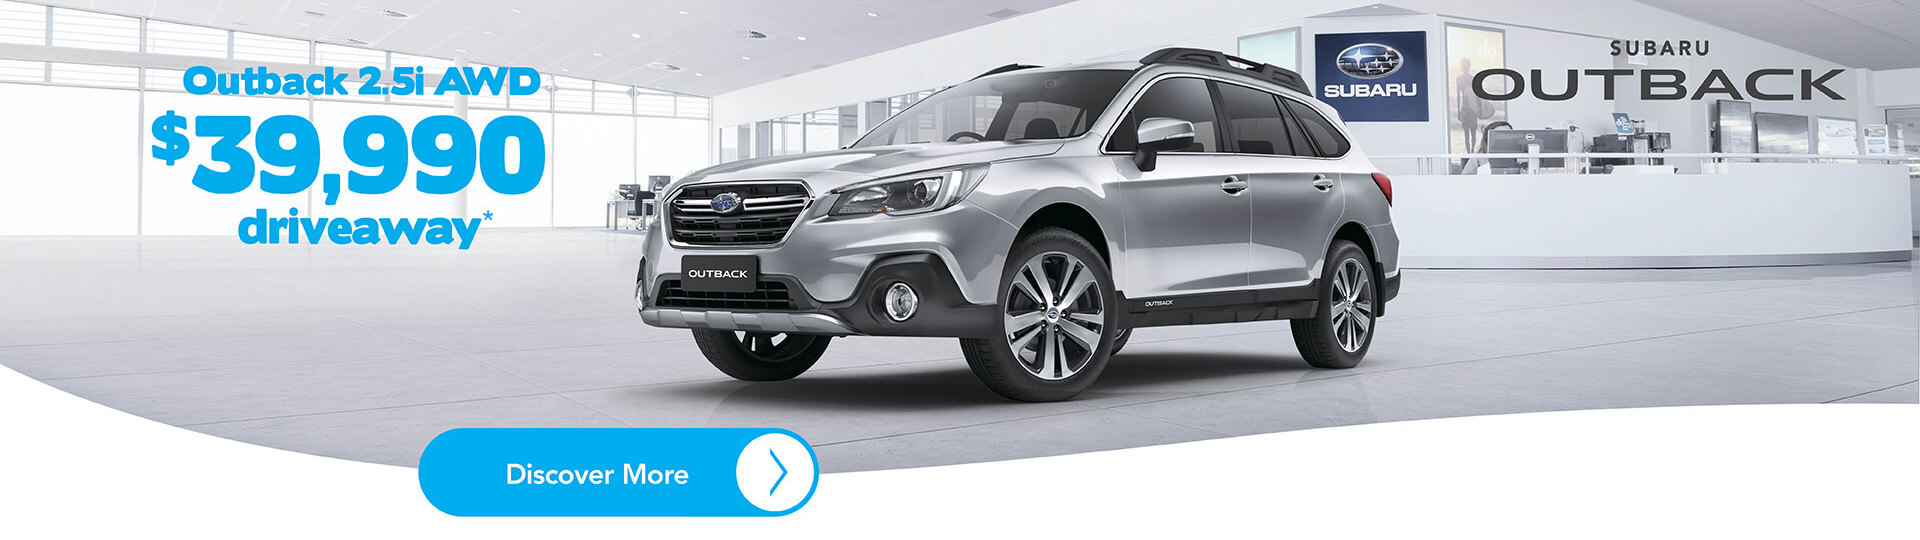 Subaru Offer - Feb 2019 - Outback